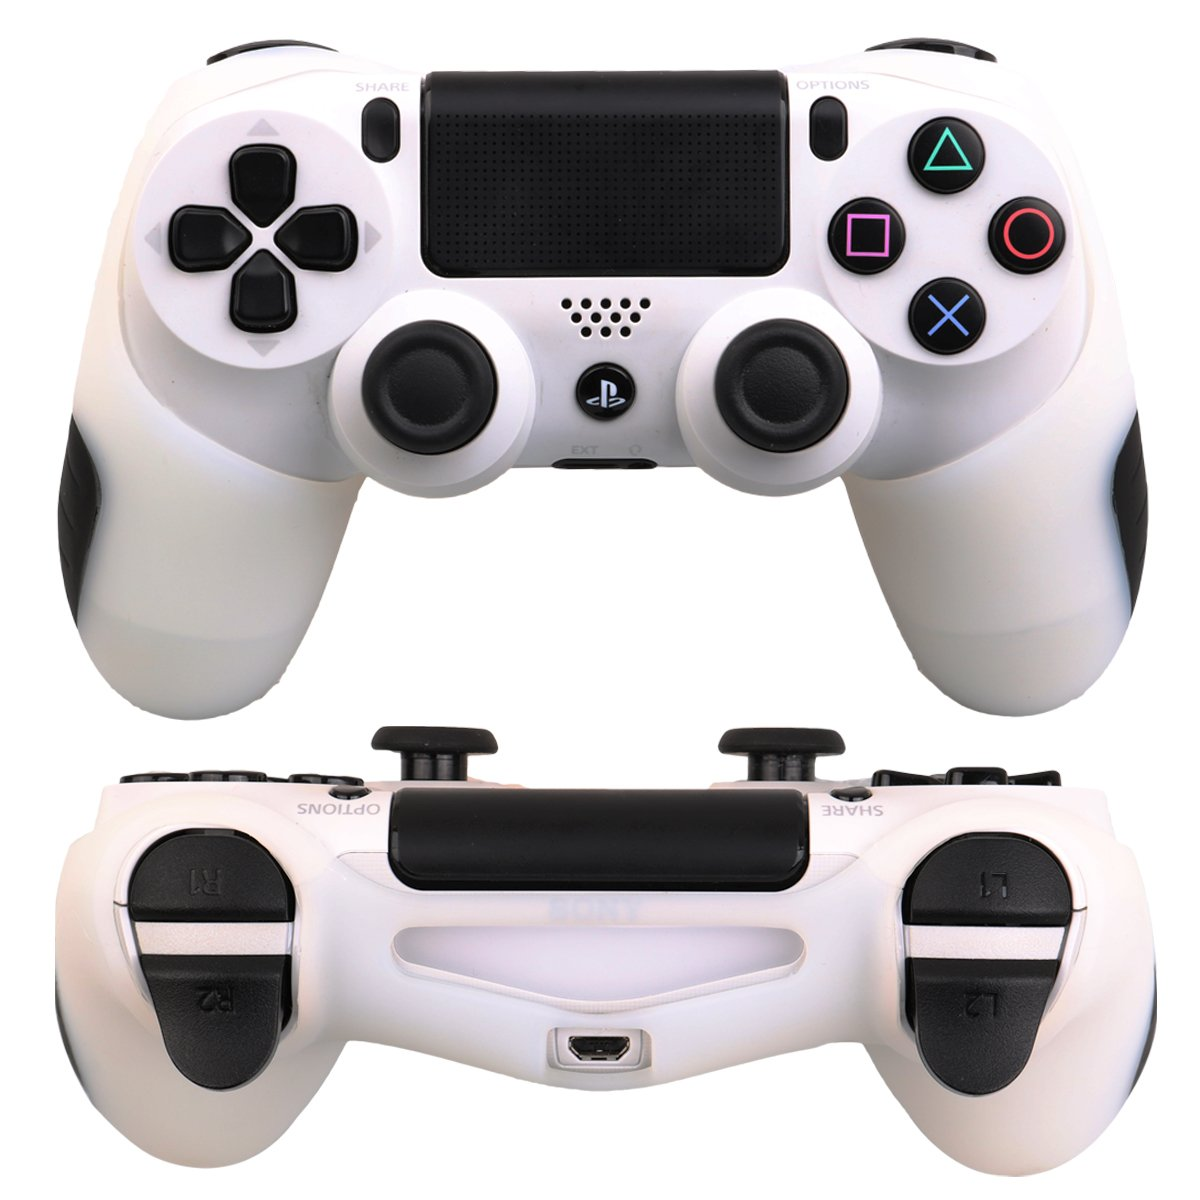 Skin X 2 + FPS Pro Thumb Grip X 8 Red,Blule Skin Compatible for PS4 Controller Pandaren Soft Silicone Thicker Half Skin Cover Grip for PS4 //Slim//PRO Controller